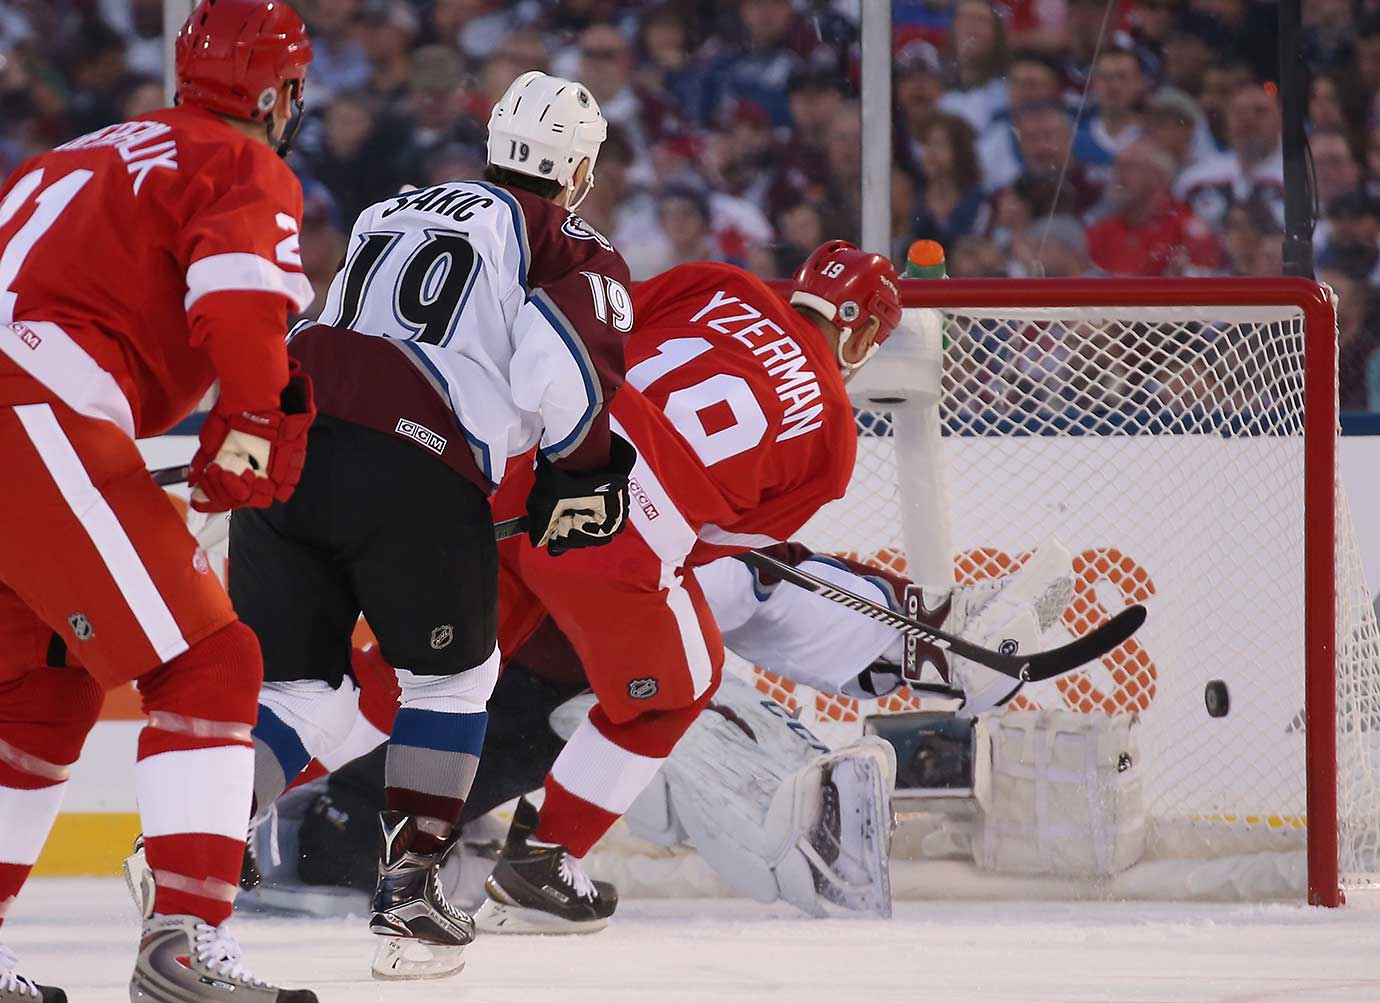 Steve Yzerman of the Red Wings Alumni team scores against Patrick Roy in Denver.